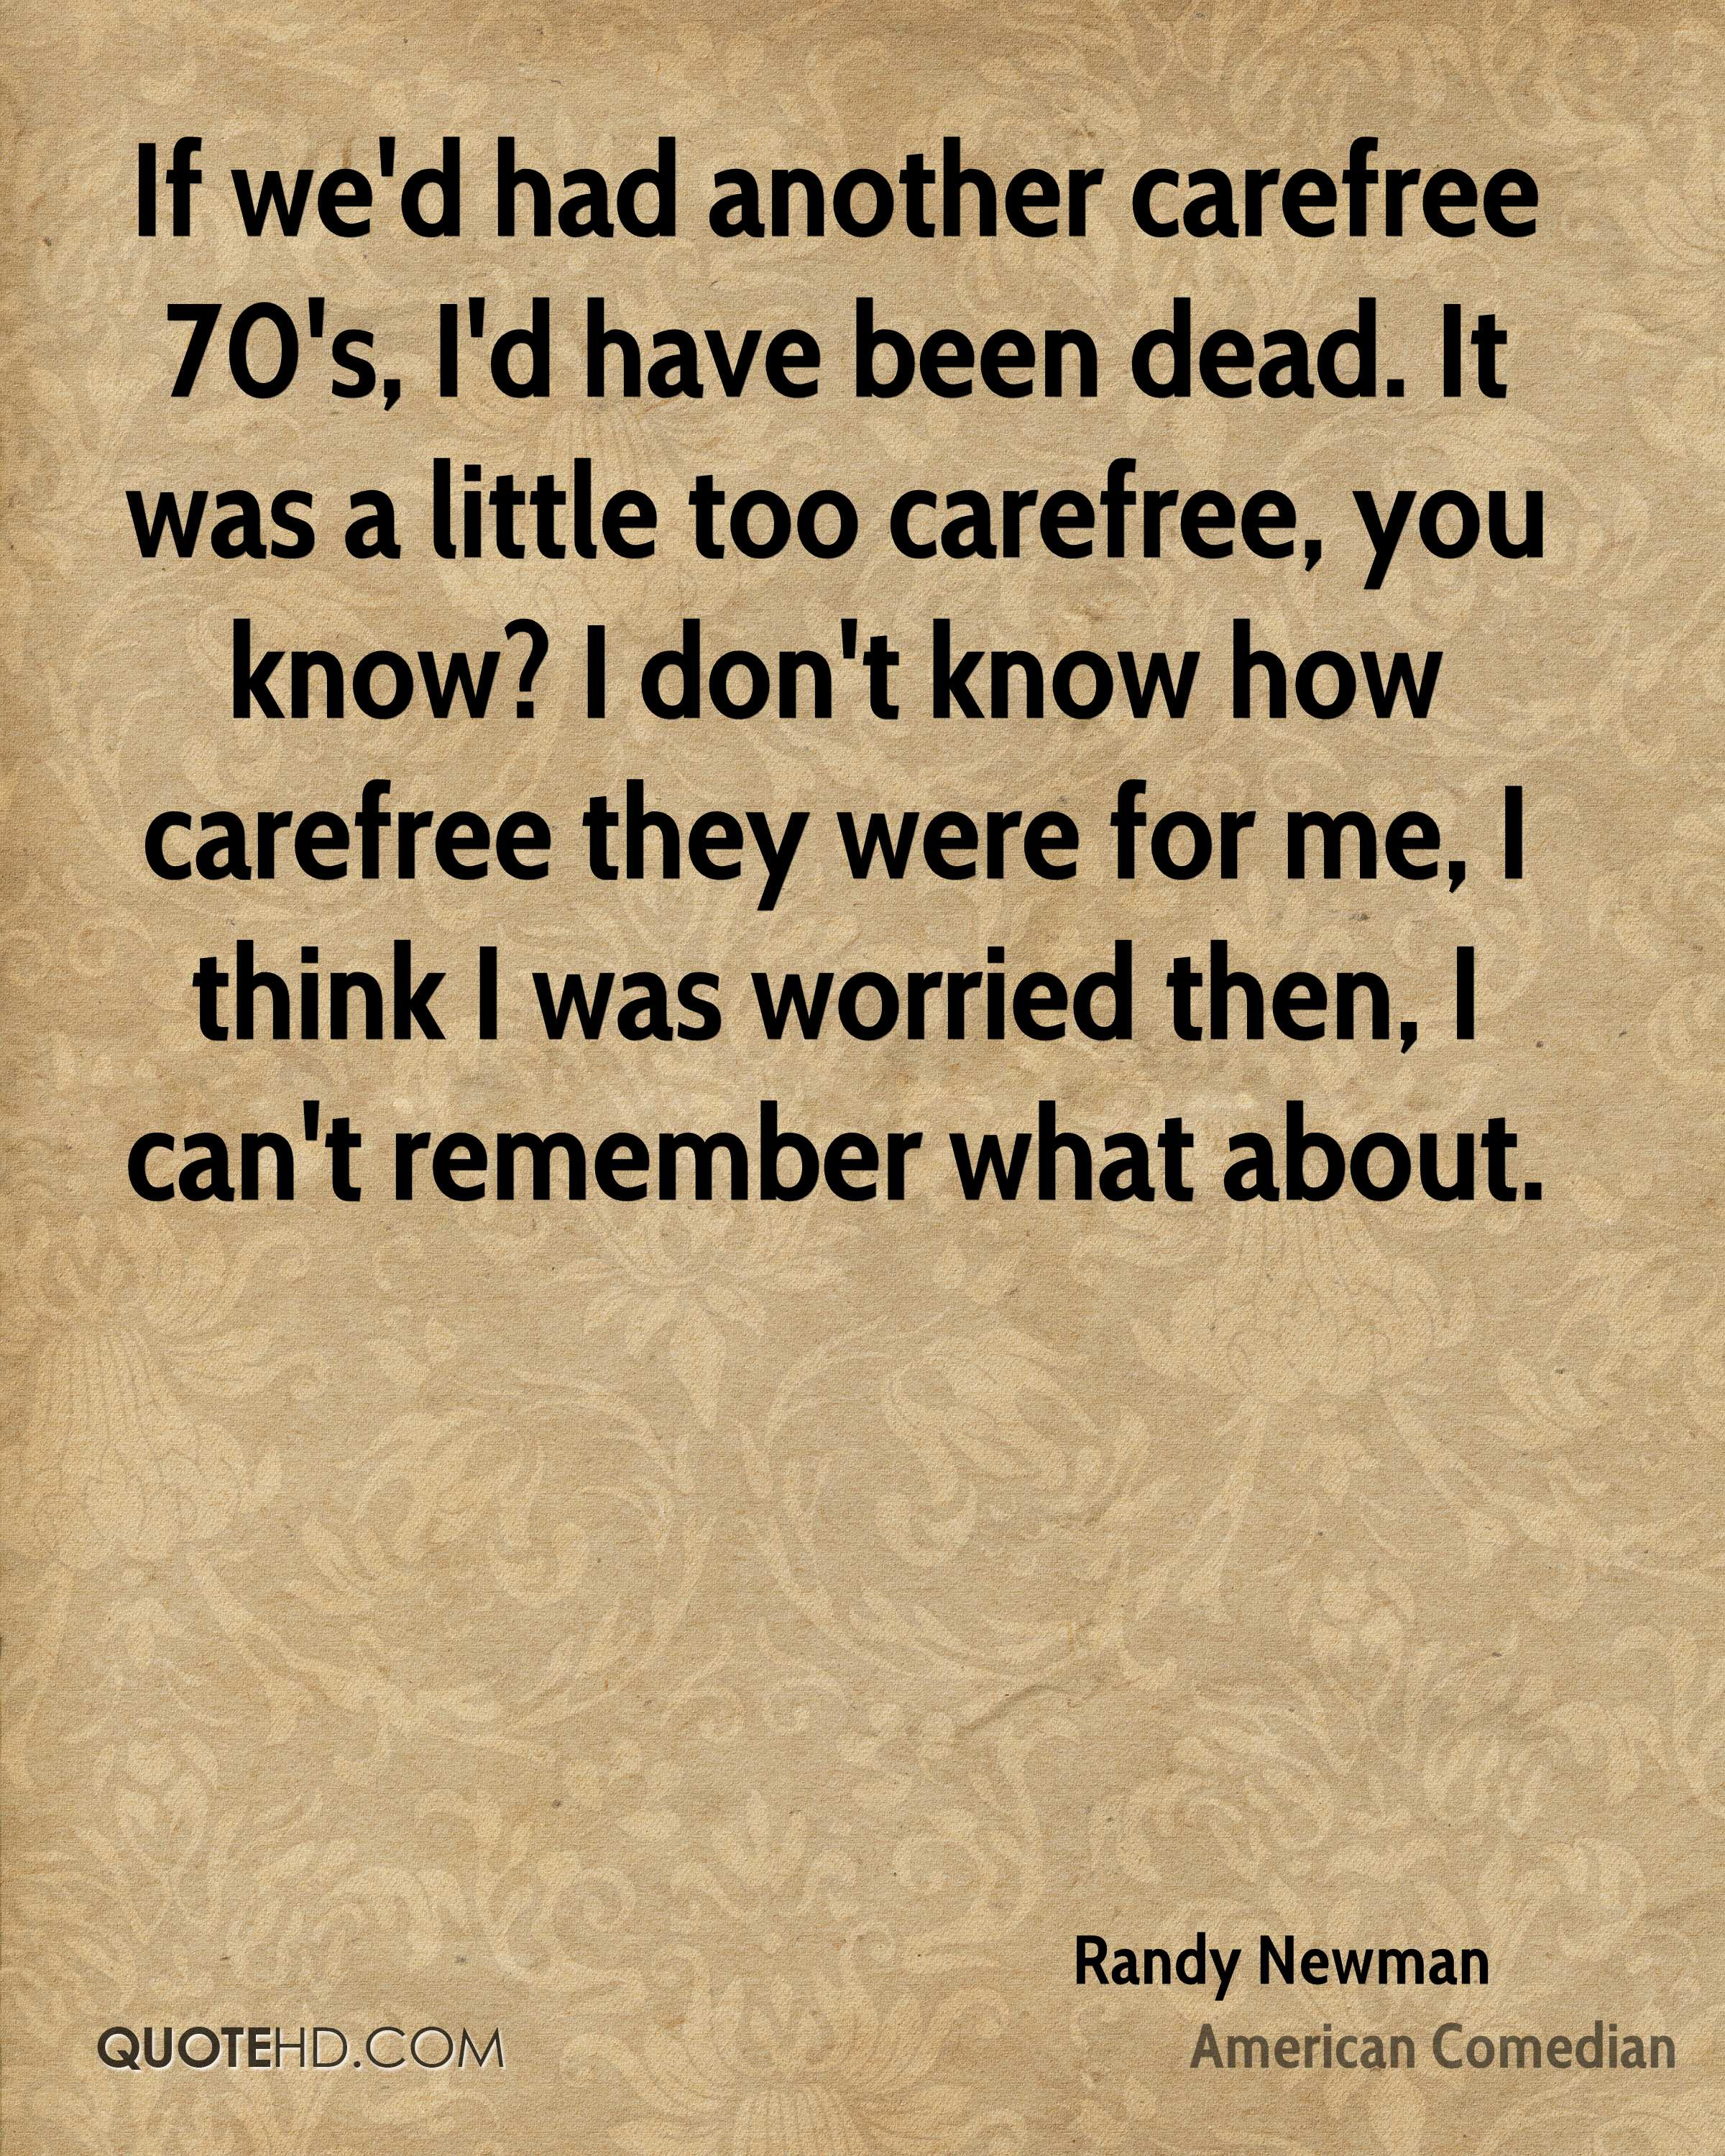 If we'd had another carefree 70's, I'd have been dead. It was a little too carefree, you know? I don't know how carefree they were for me, I think I was worried then, I can't remember what about.